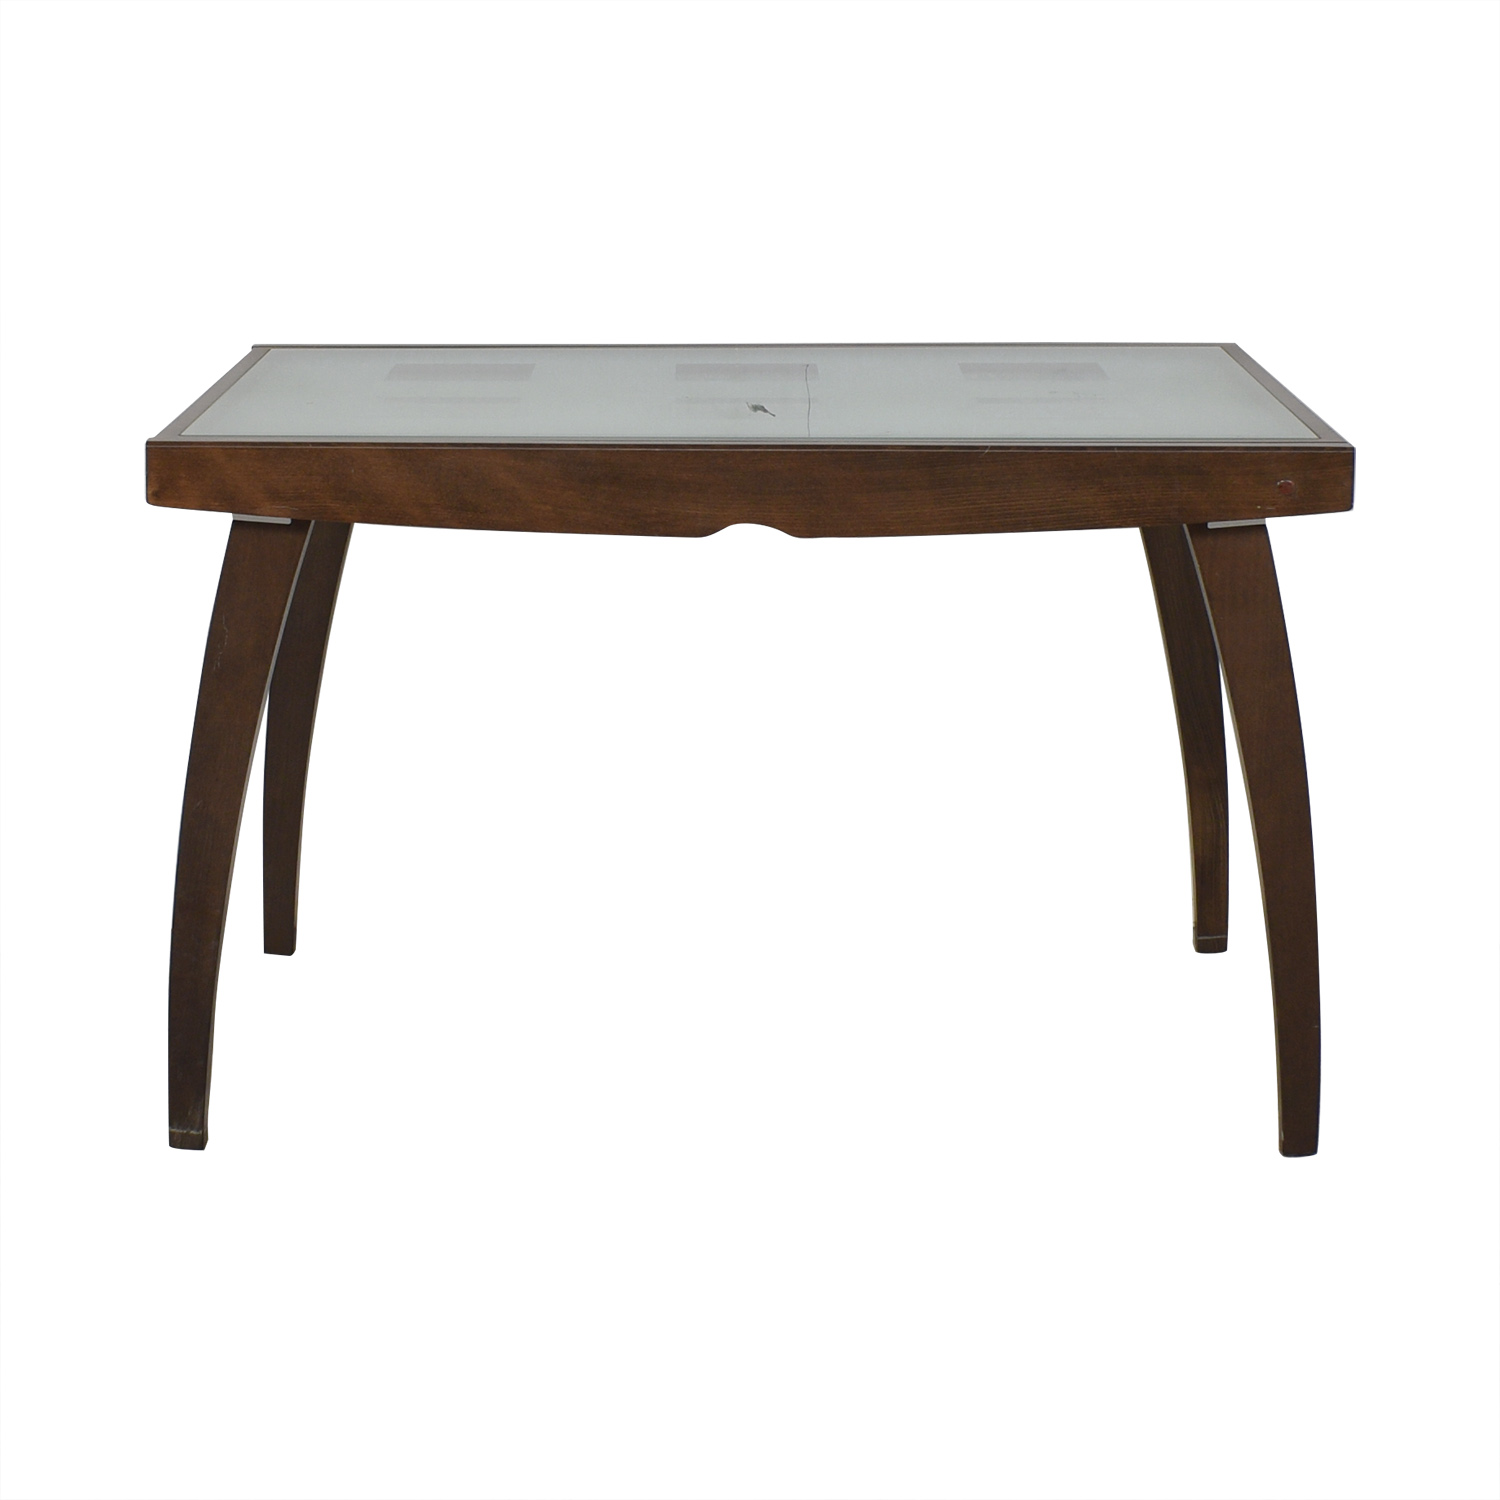 Calligaris Bon Ton Extension Dining Table Calligaris